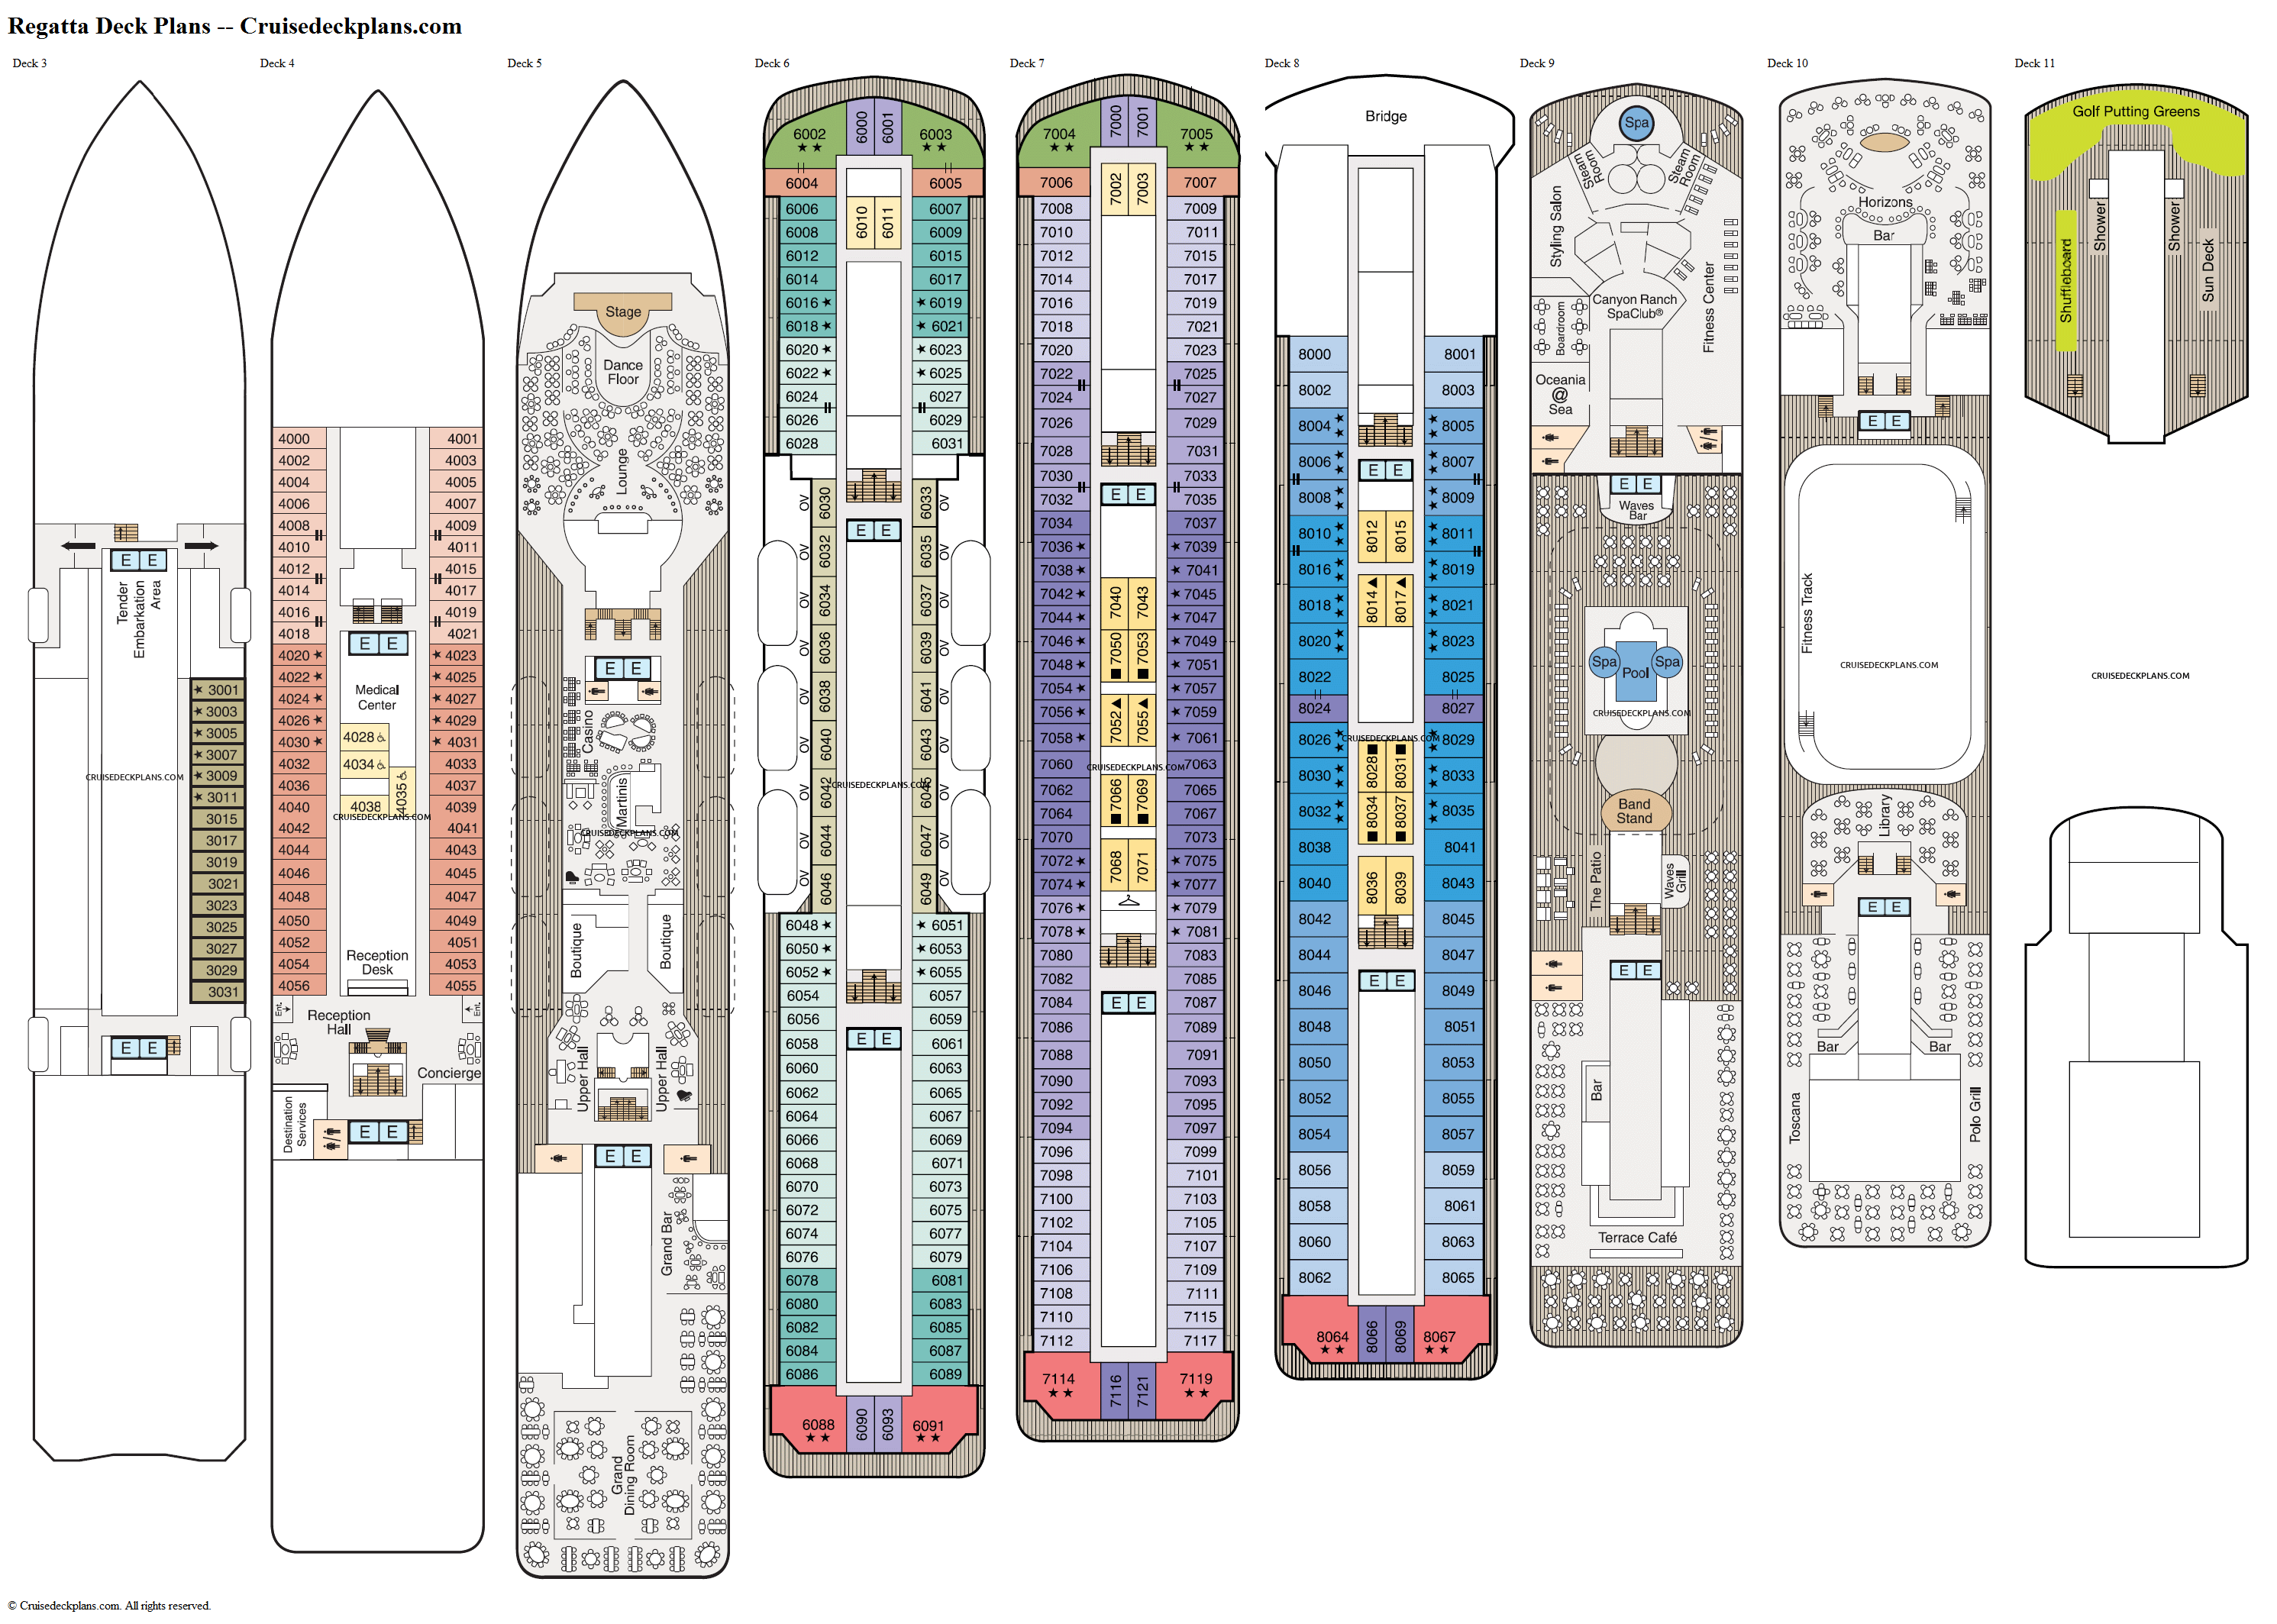 Celebrity Solstice Floor Plan Regatta Deck Plans Diagrams Pictures Video